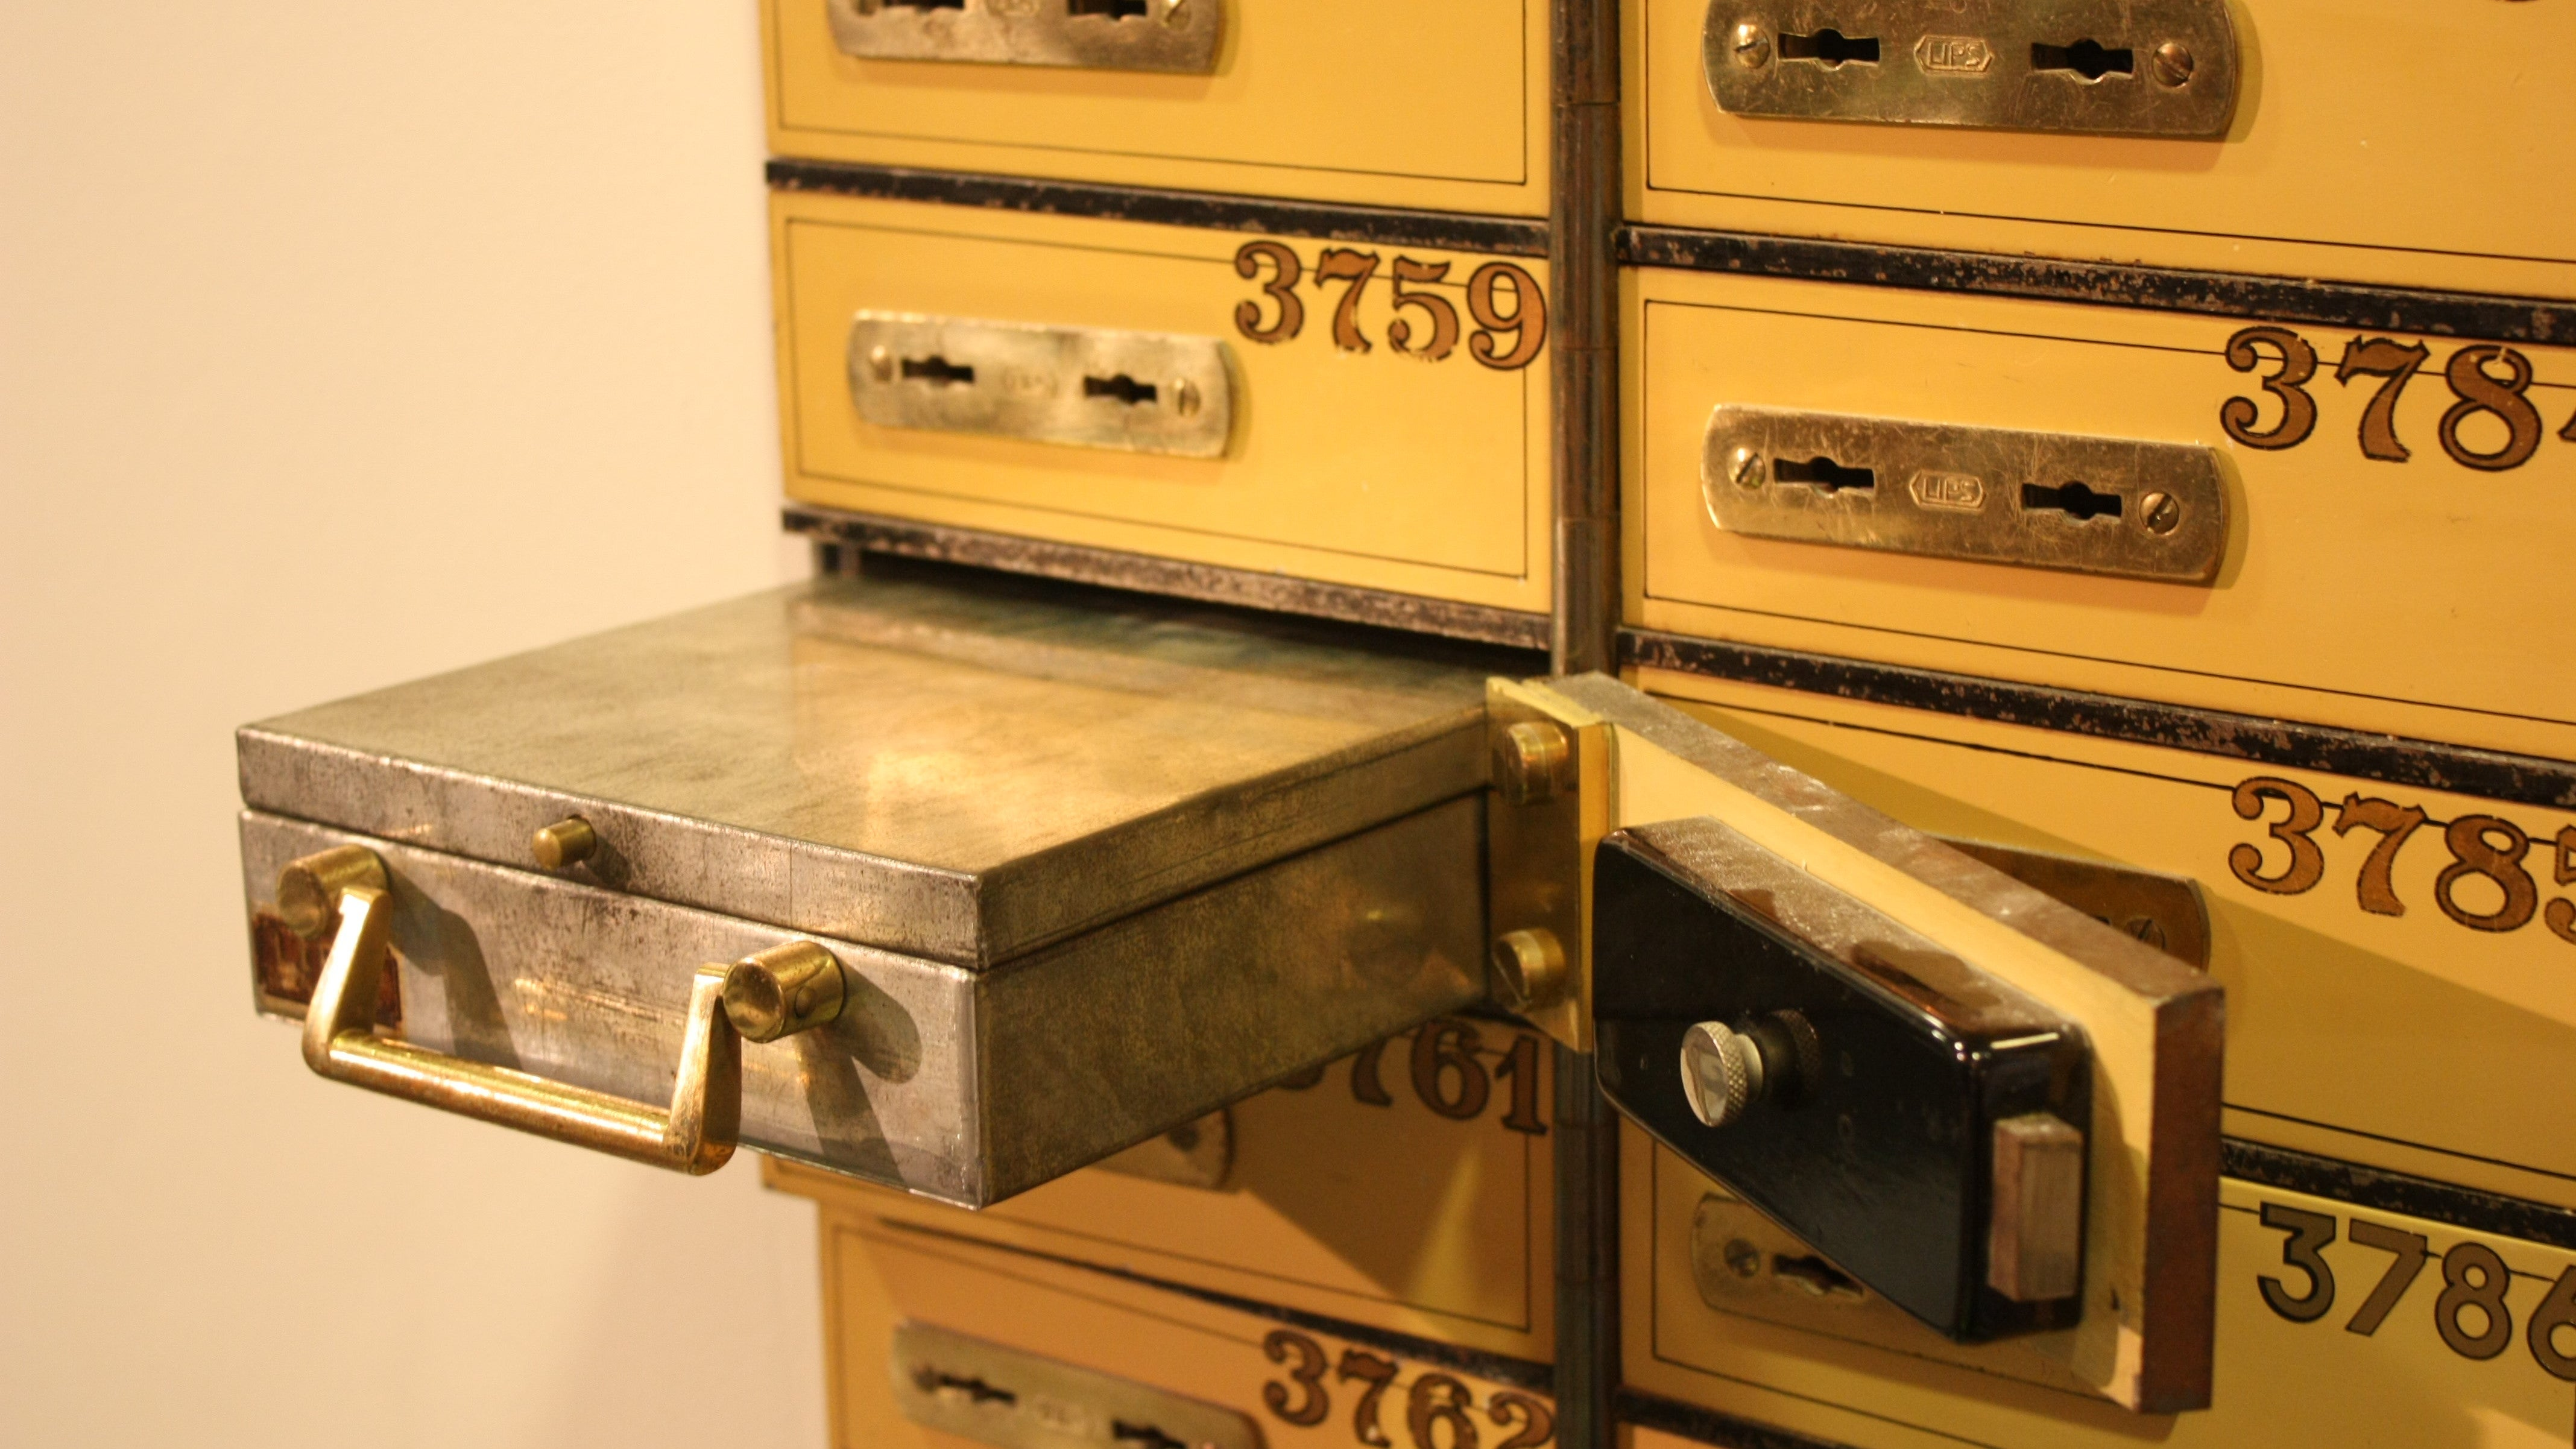 It's Time To Find A Safe Deposit Box Alternative